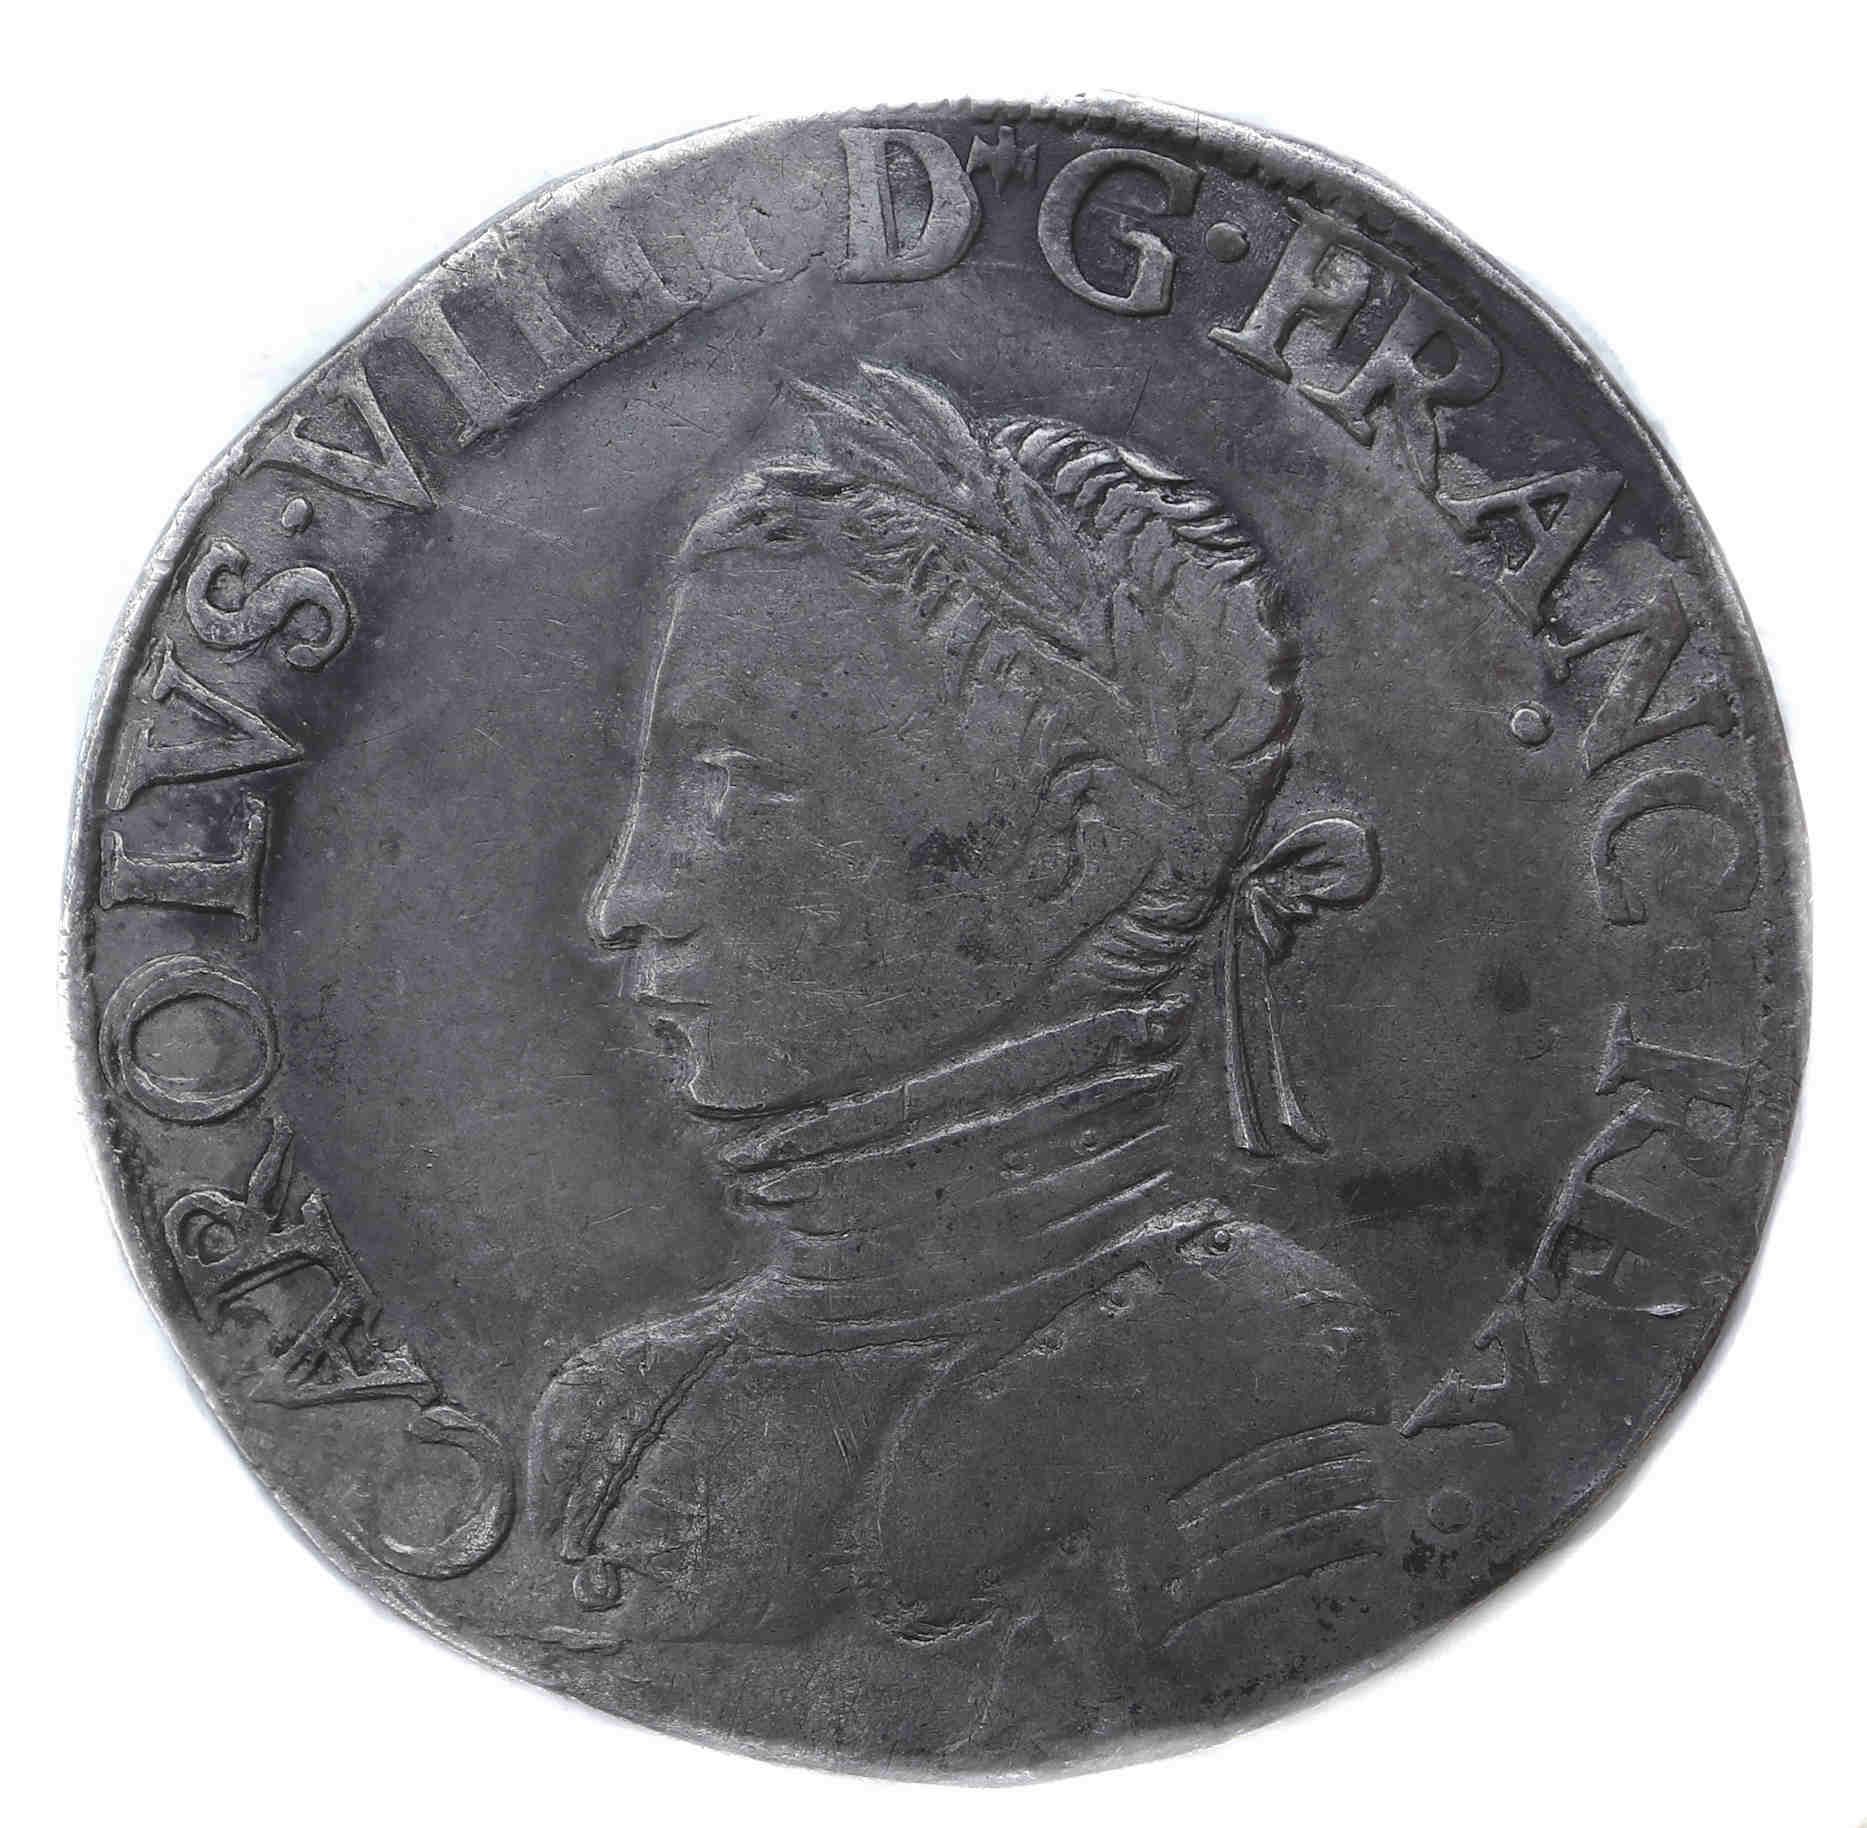 CHARLES IX TESTON 1562 PARIS droit